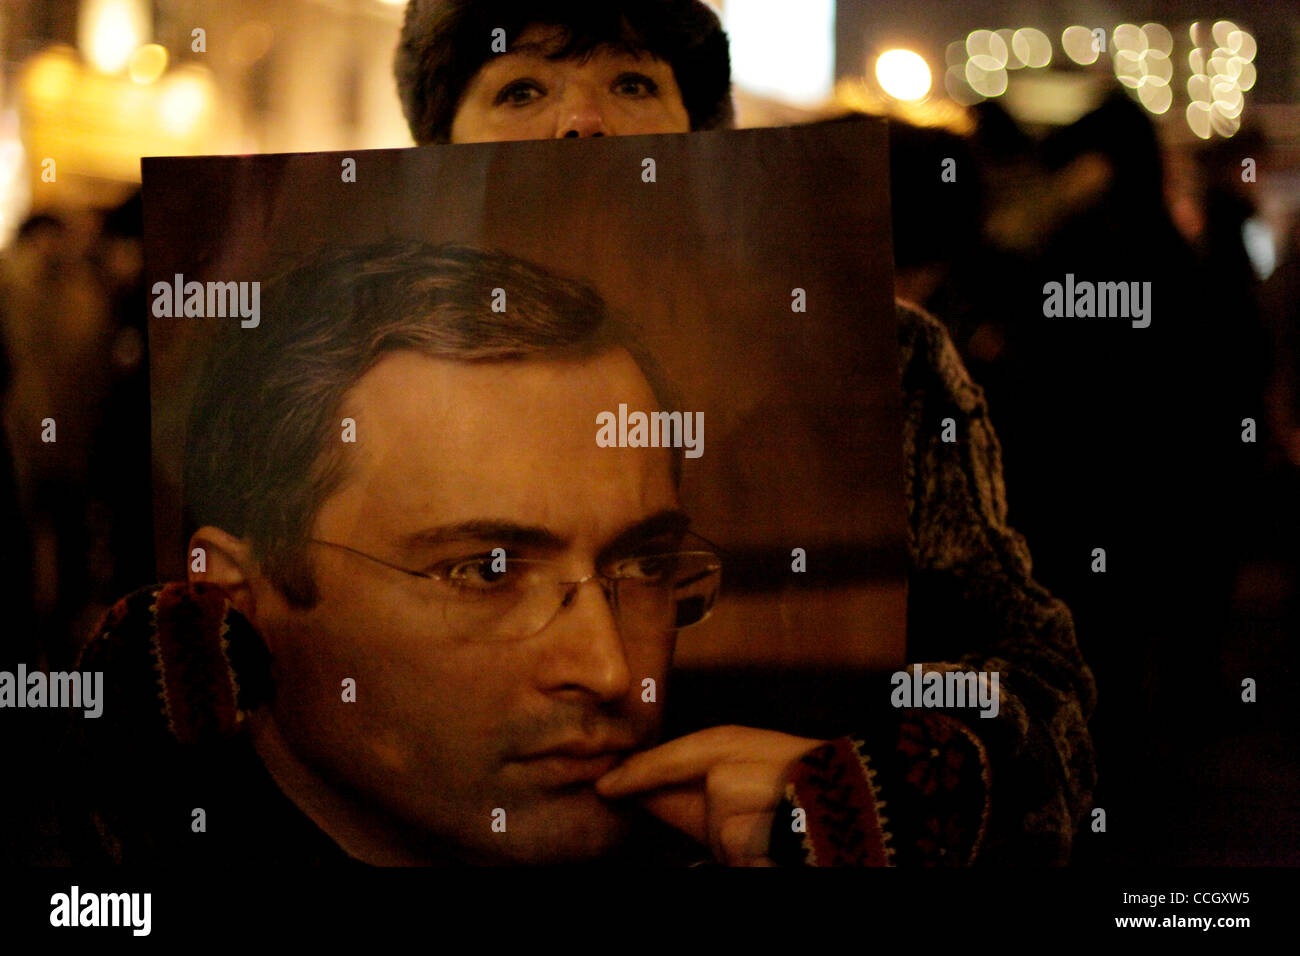 Dec 31, 2010 - Moscow, Russia - A demonstrator holds a portrait of jailed ex-tycoon Mikhail Khodorkovsky at the - Stock Image